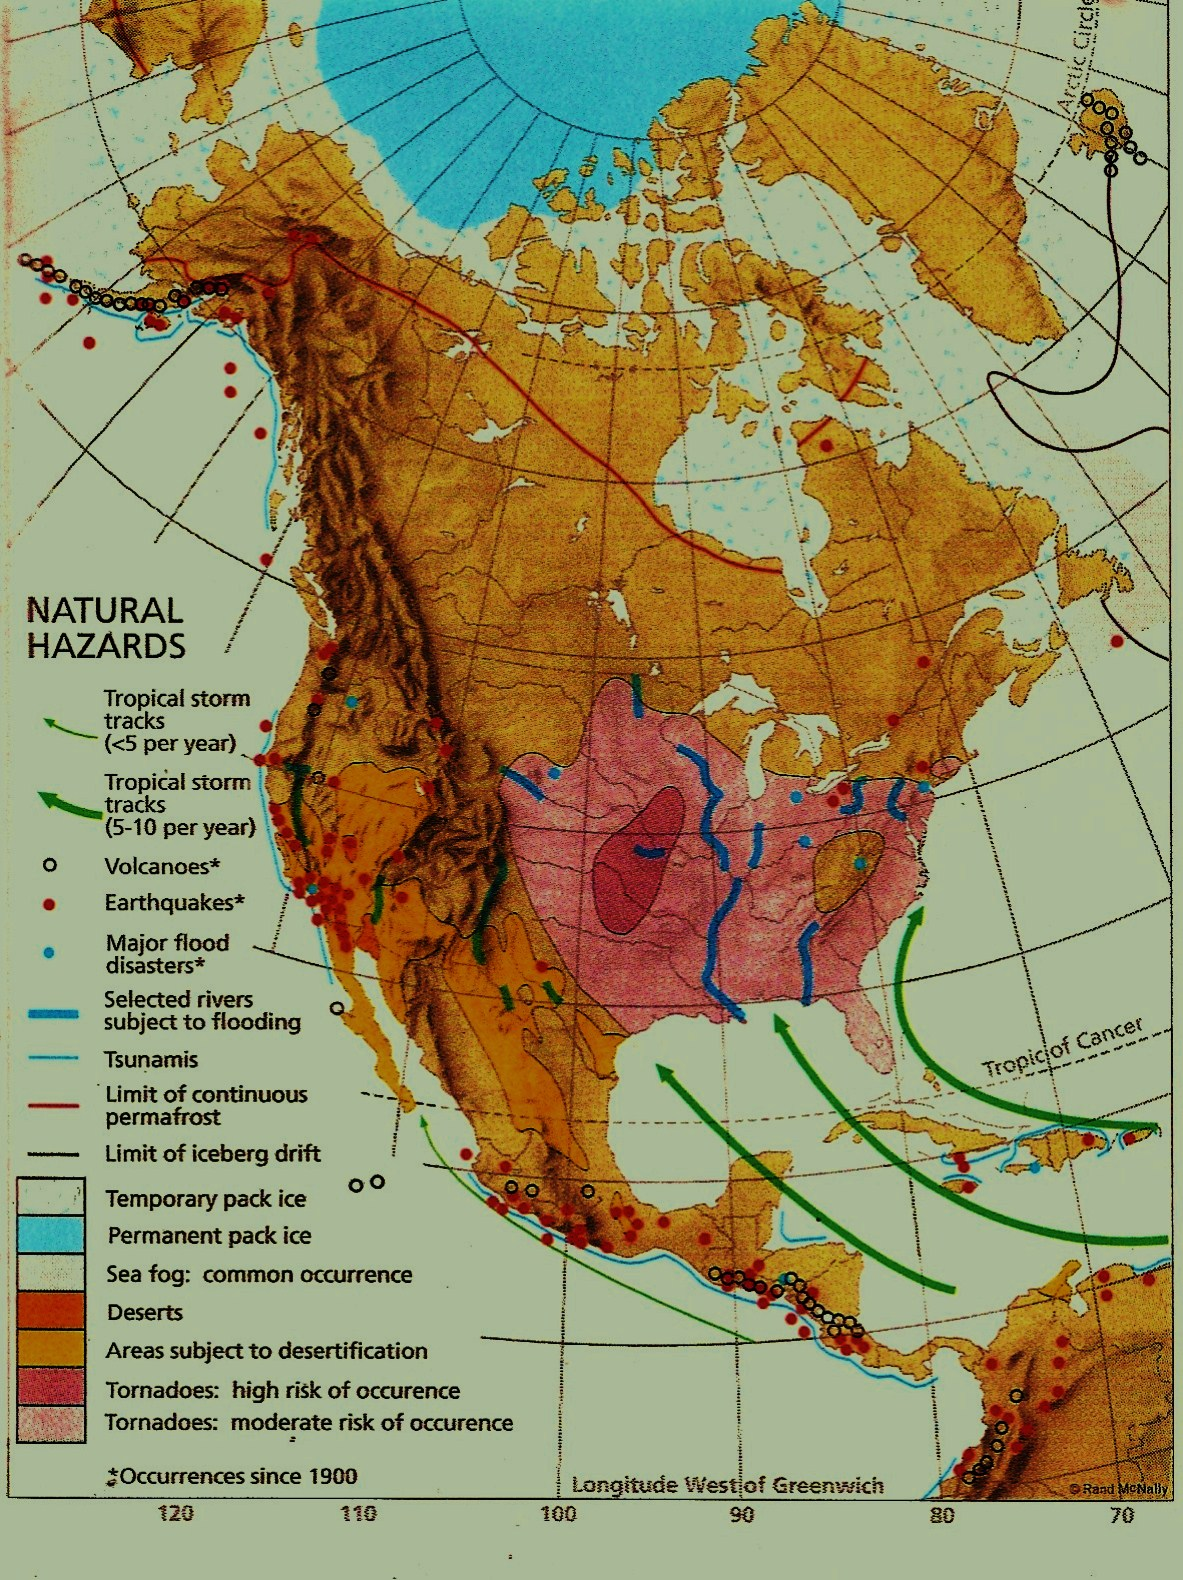 Geography Of The Us And Canada In The News Natural Hazards Map